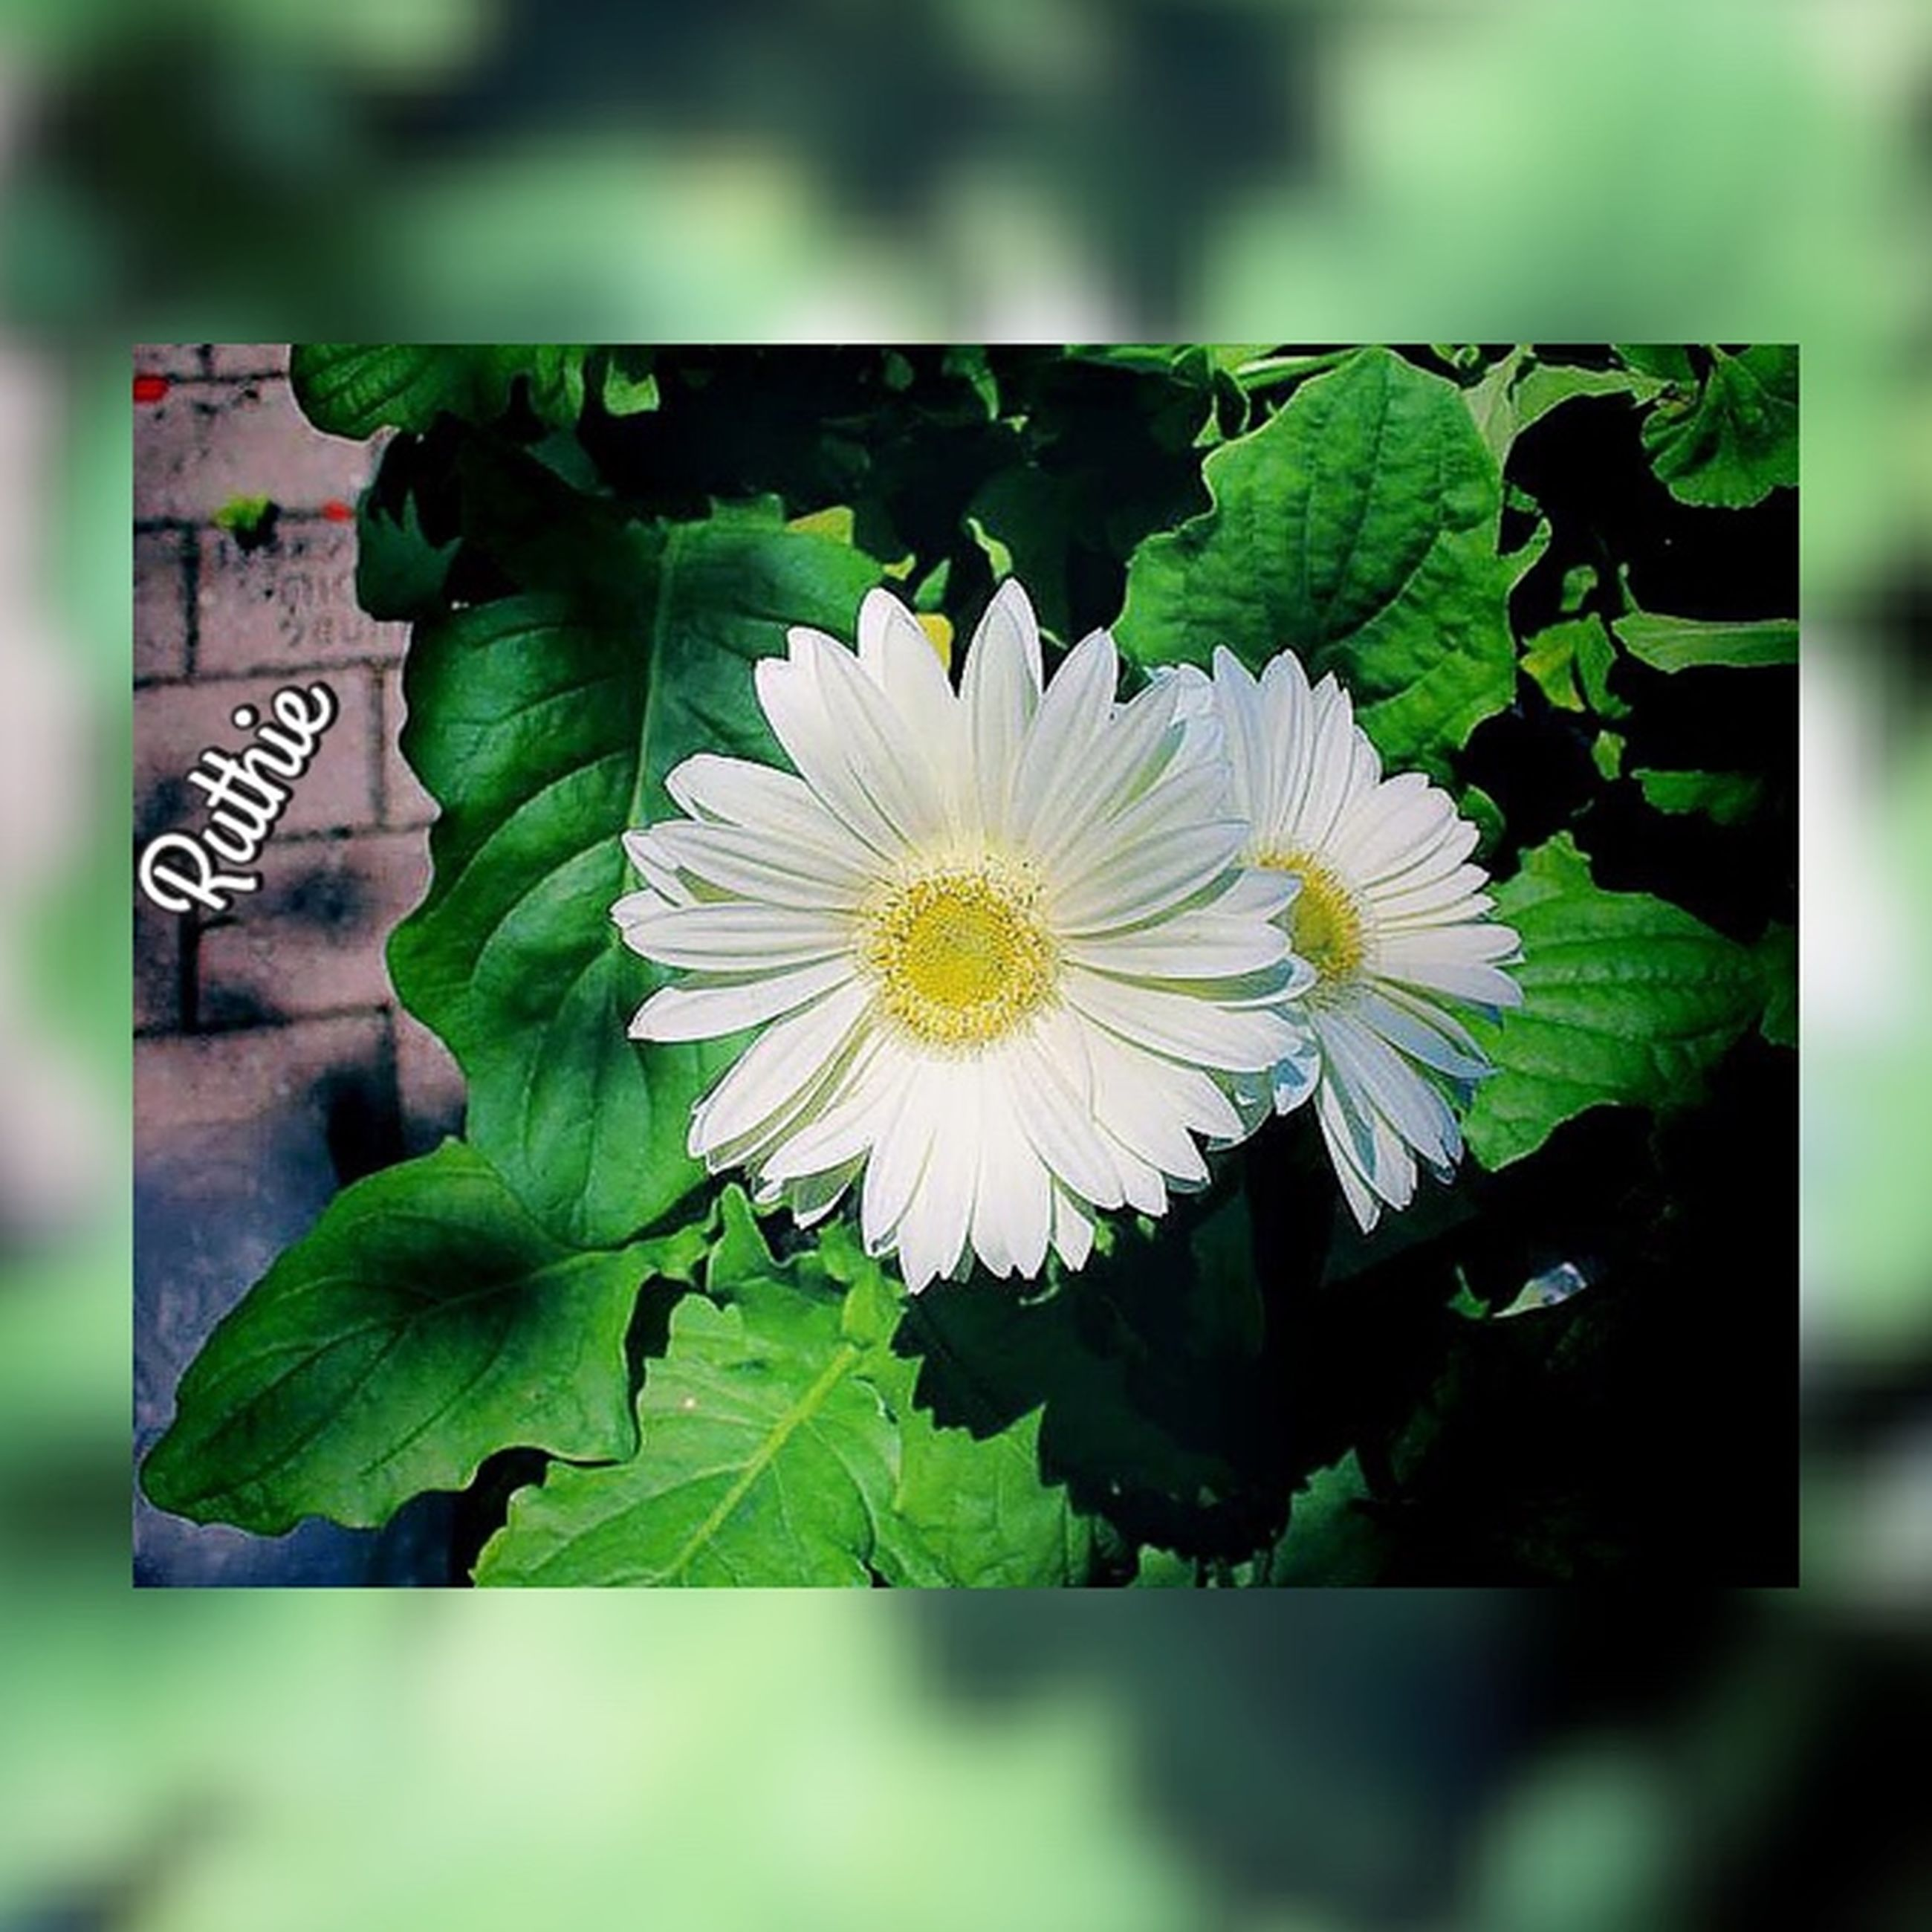 flower, freshness, petal, fragility, flower head, leaf, growth, close-up, focus on foreground, plant, white color, beauty in nature, blooming, green color, nature, single flower, day, no people, outdoors, selective focus